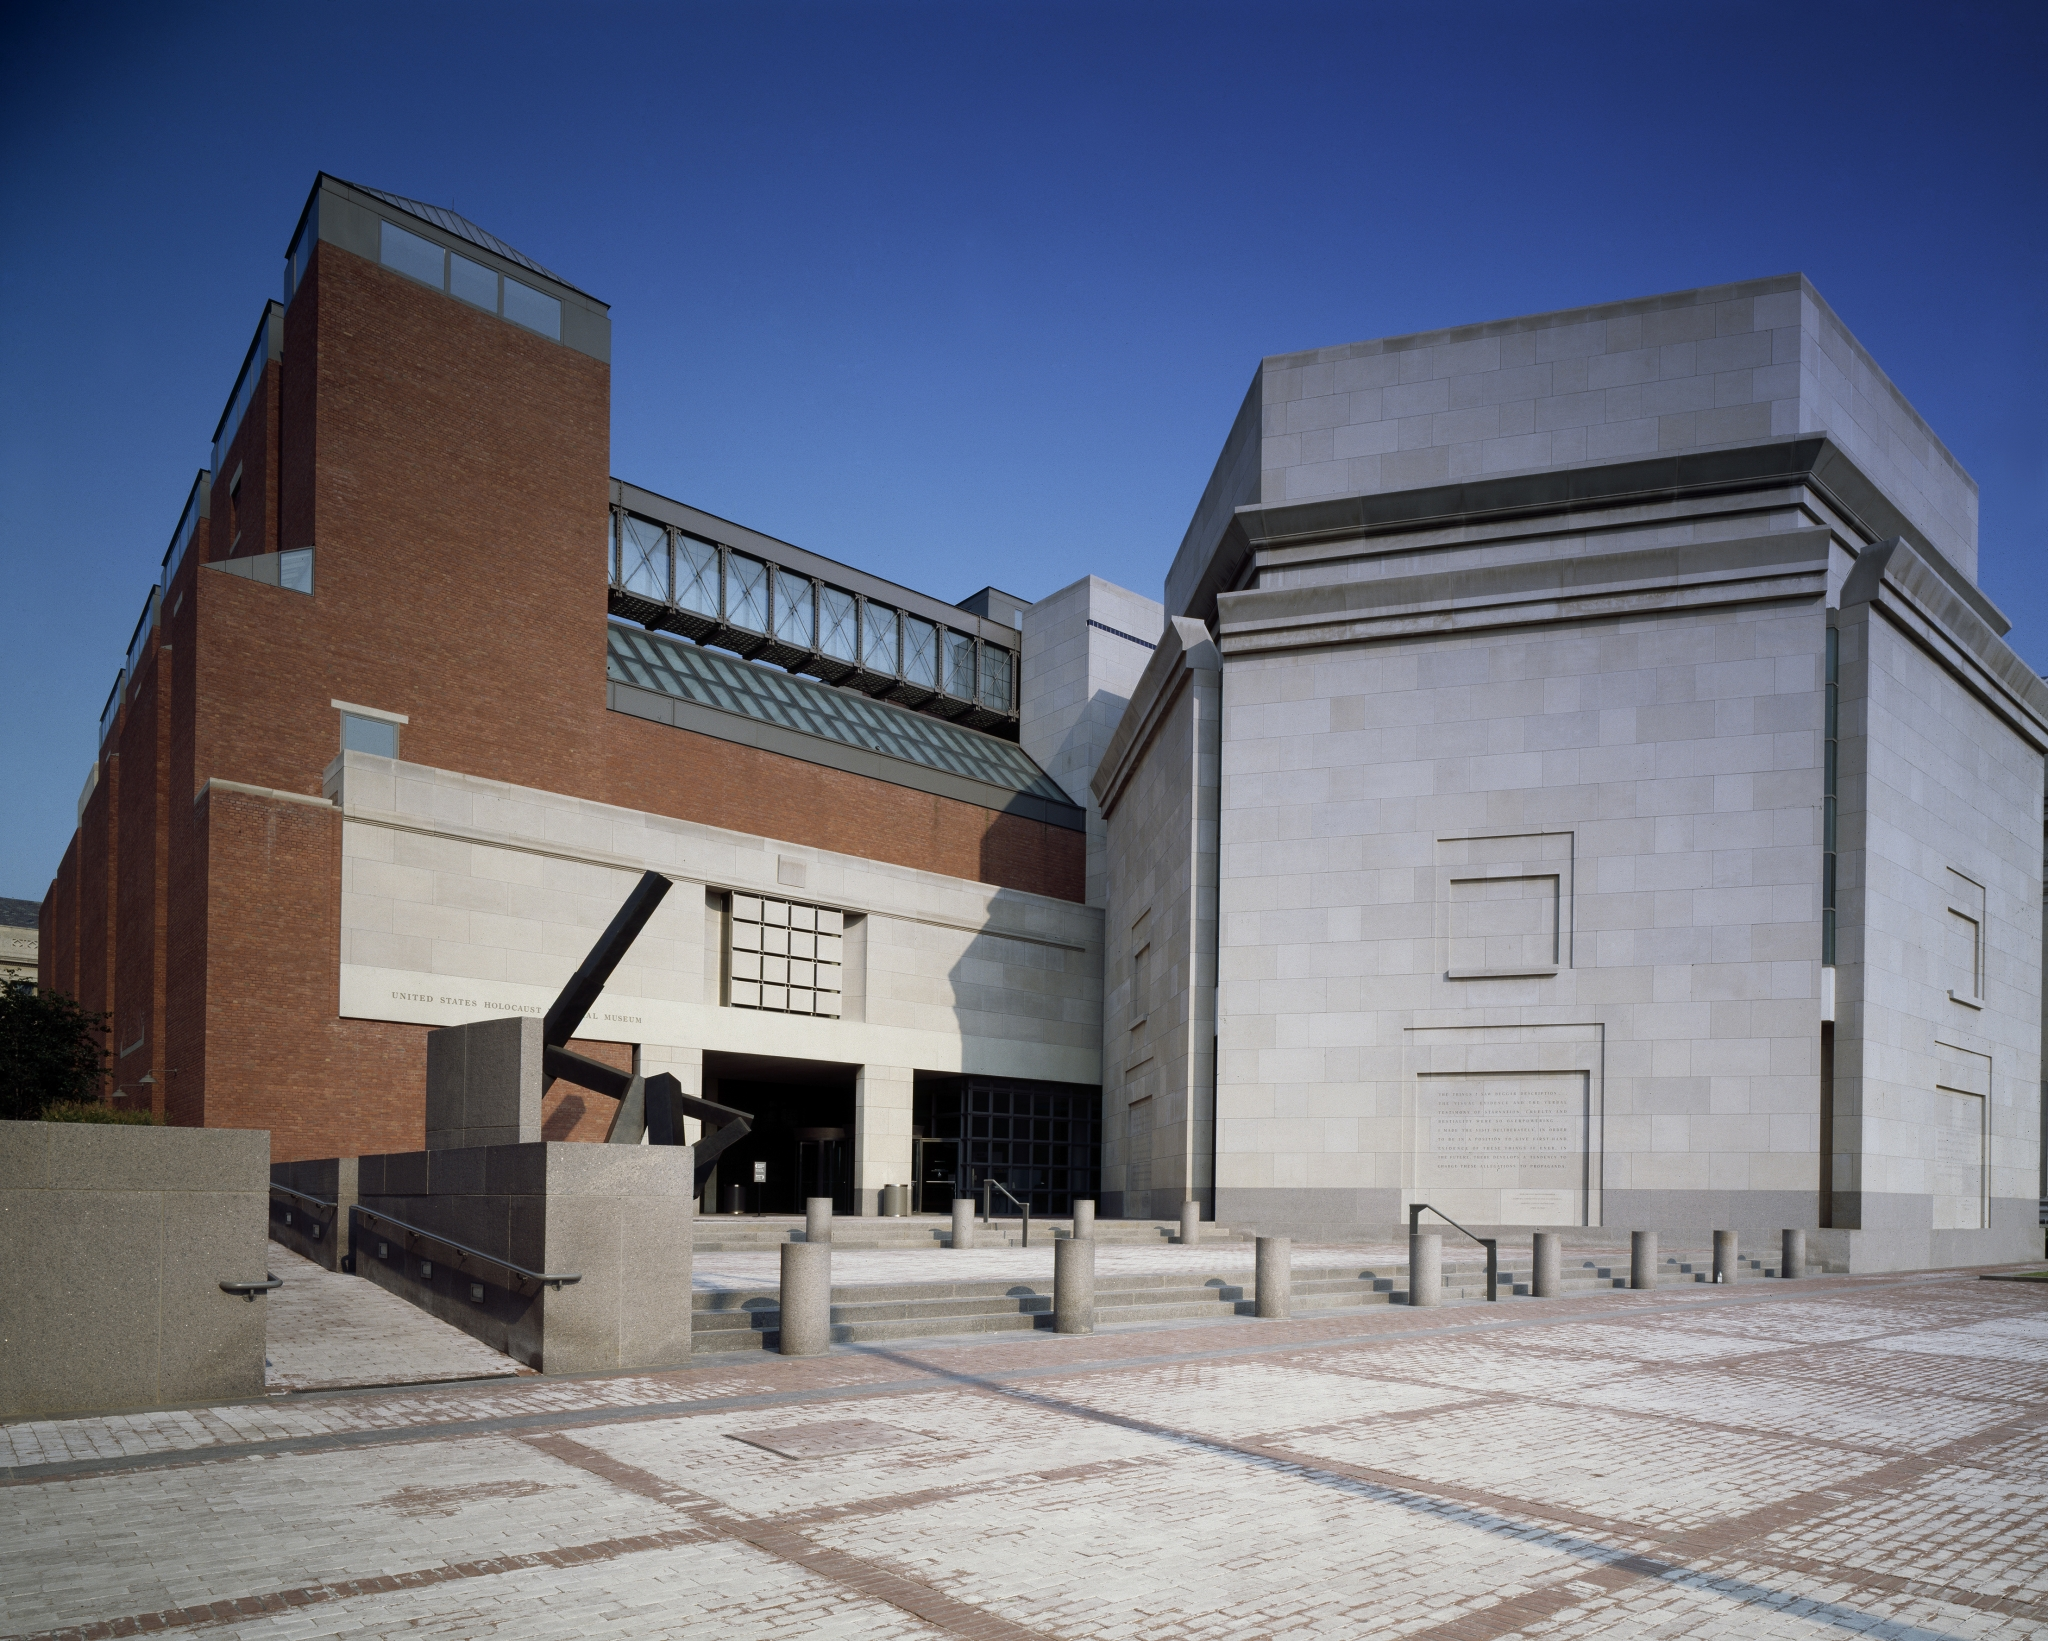 U S  Holocaust Museum condemns white nationalists, says